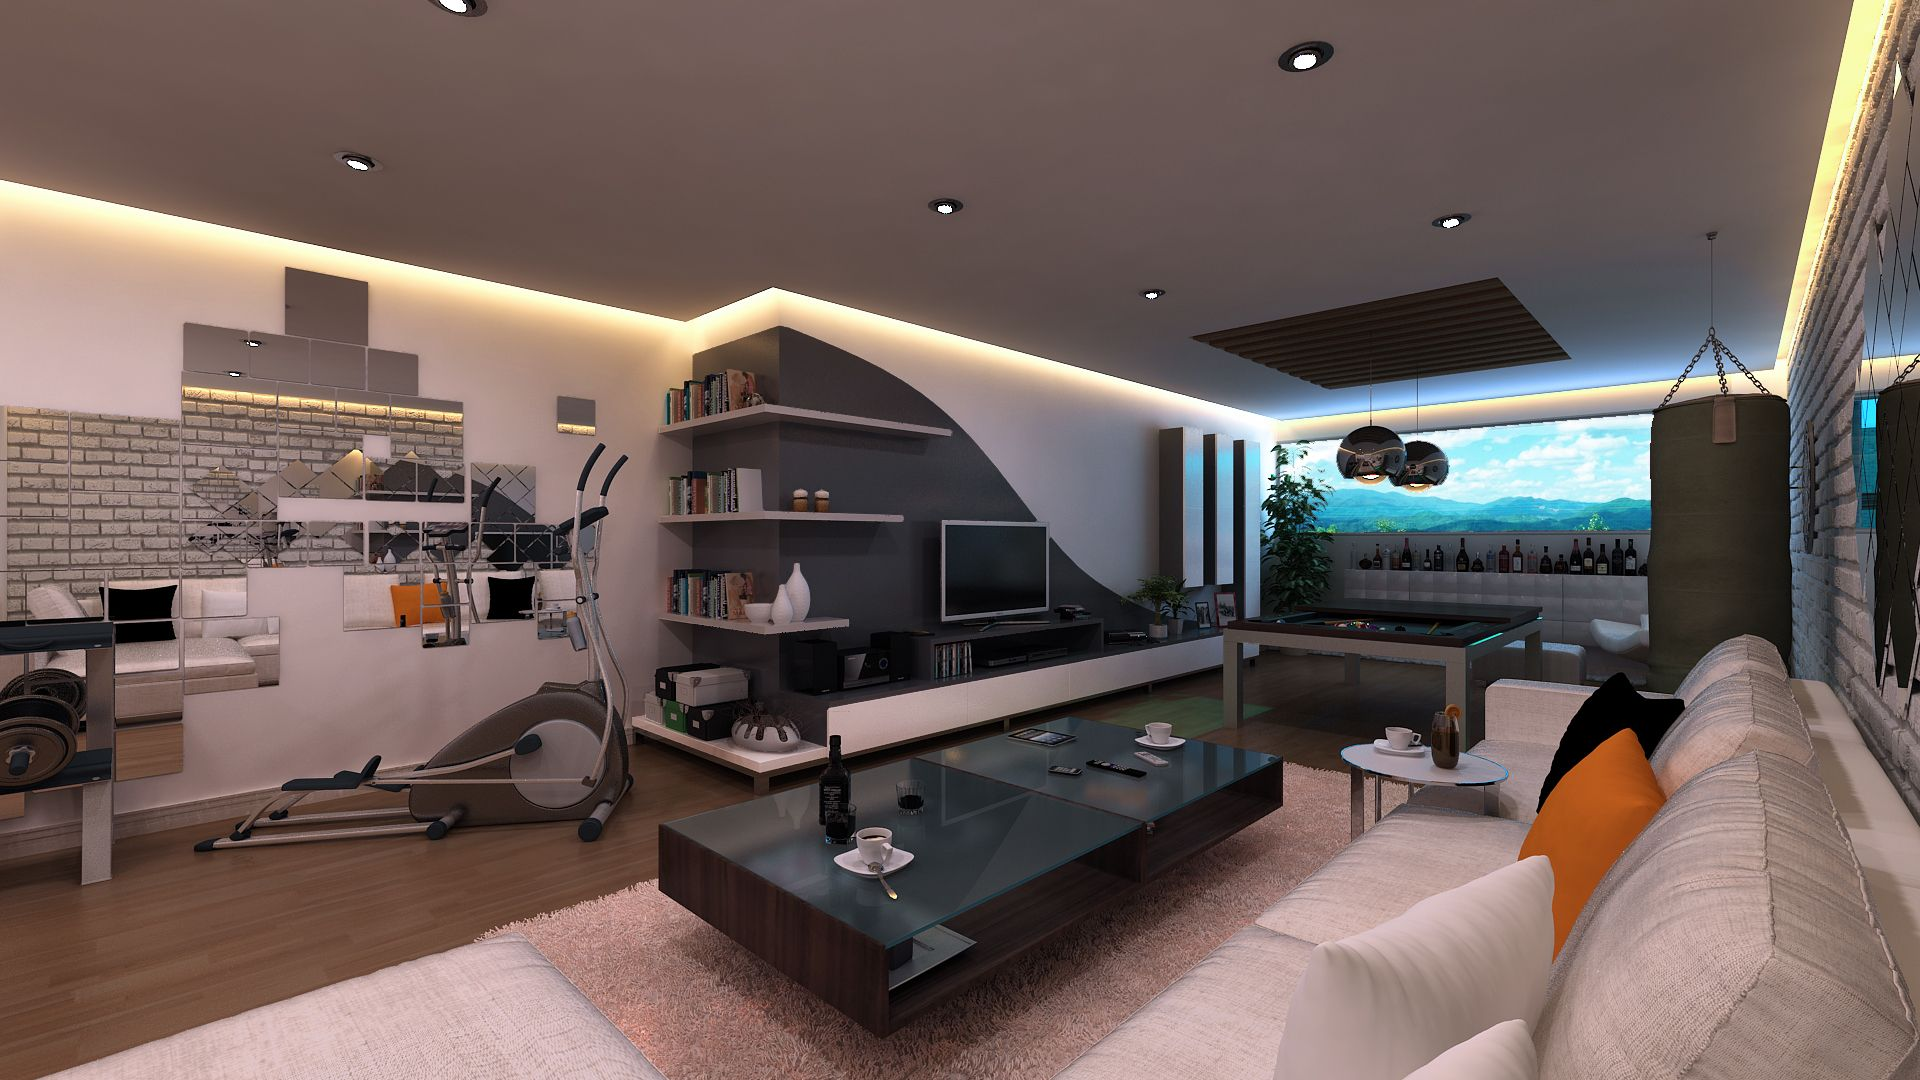 Game Room Design Ideas 17 truly amazing masculine game room design ideas Find This Pin And More On Bedroom Luxurious Bachelor Pad Ideas With Unique Lightinggames Room Design